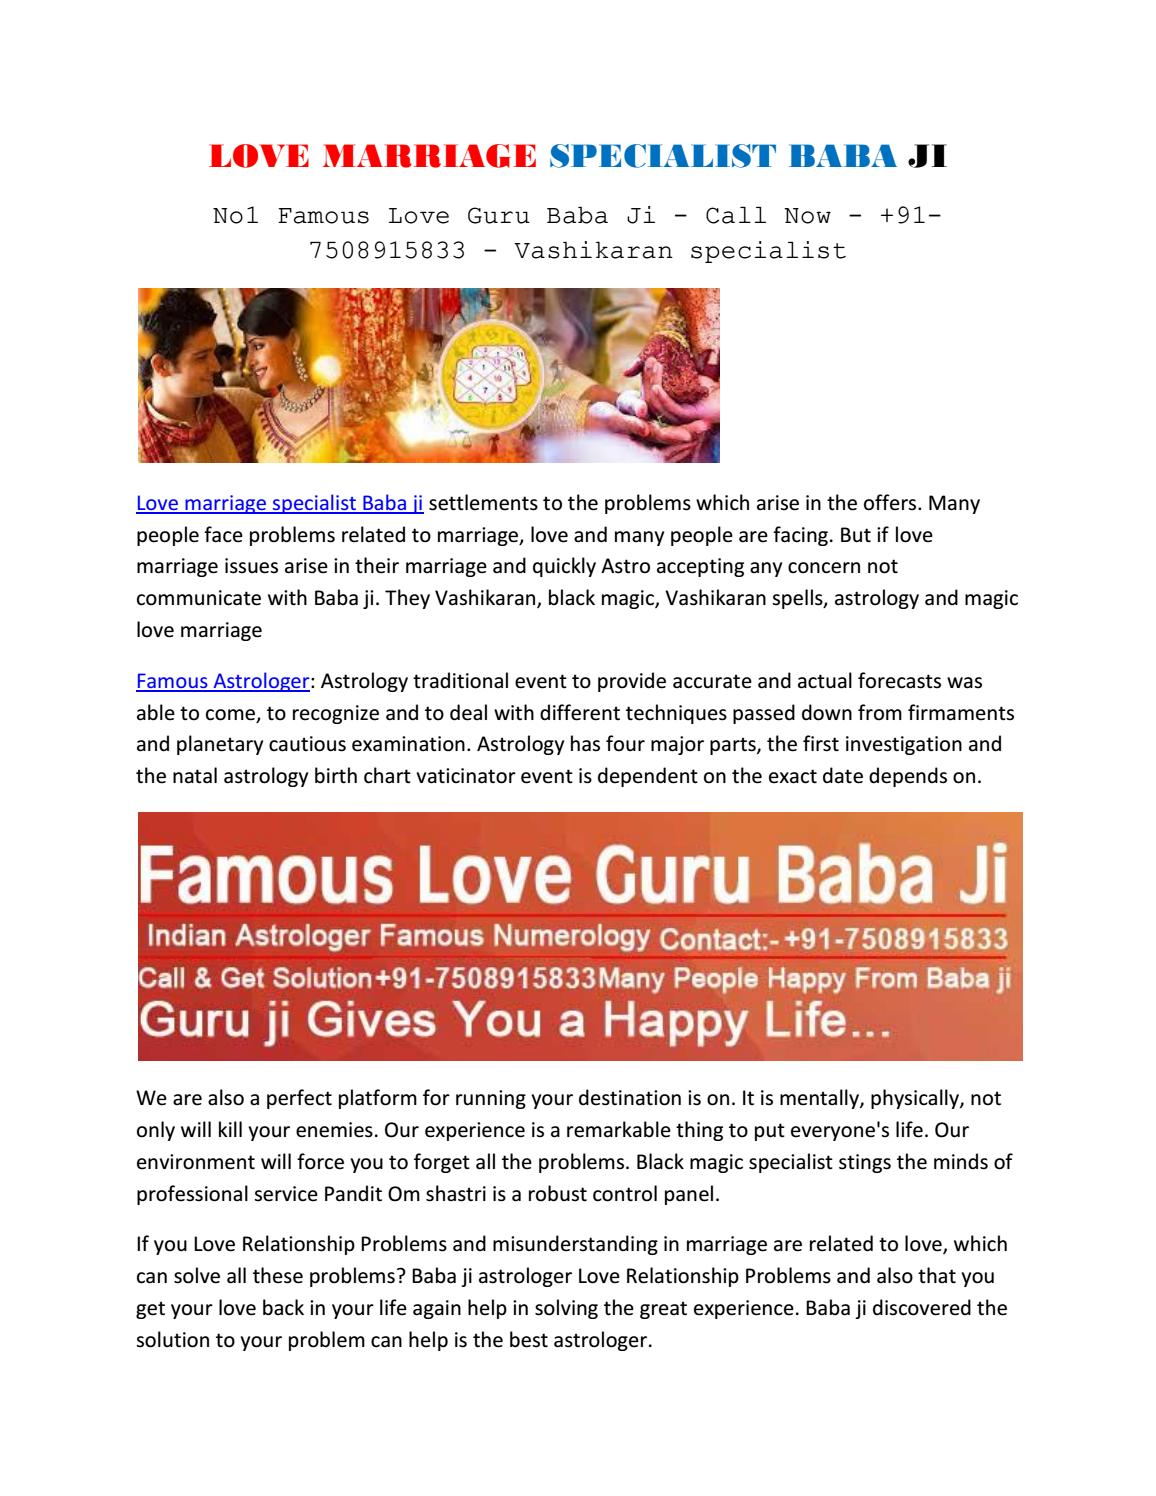 Love Marriage Specialist Baba Ji By Sameer Sulemani Issuu